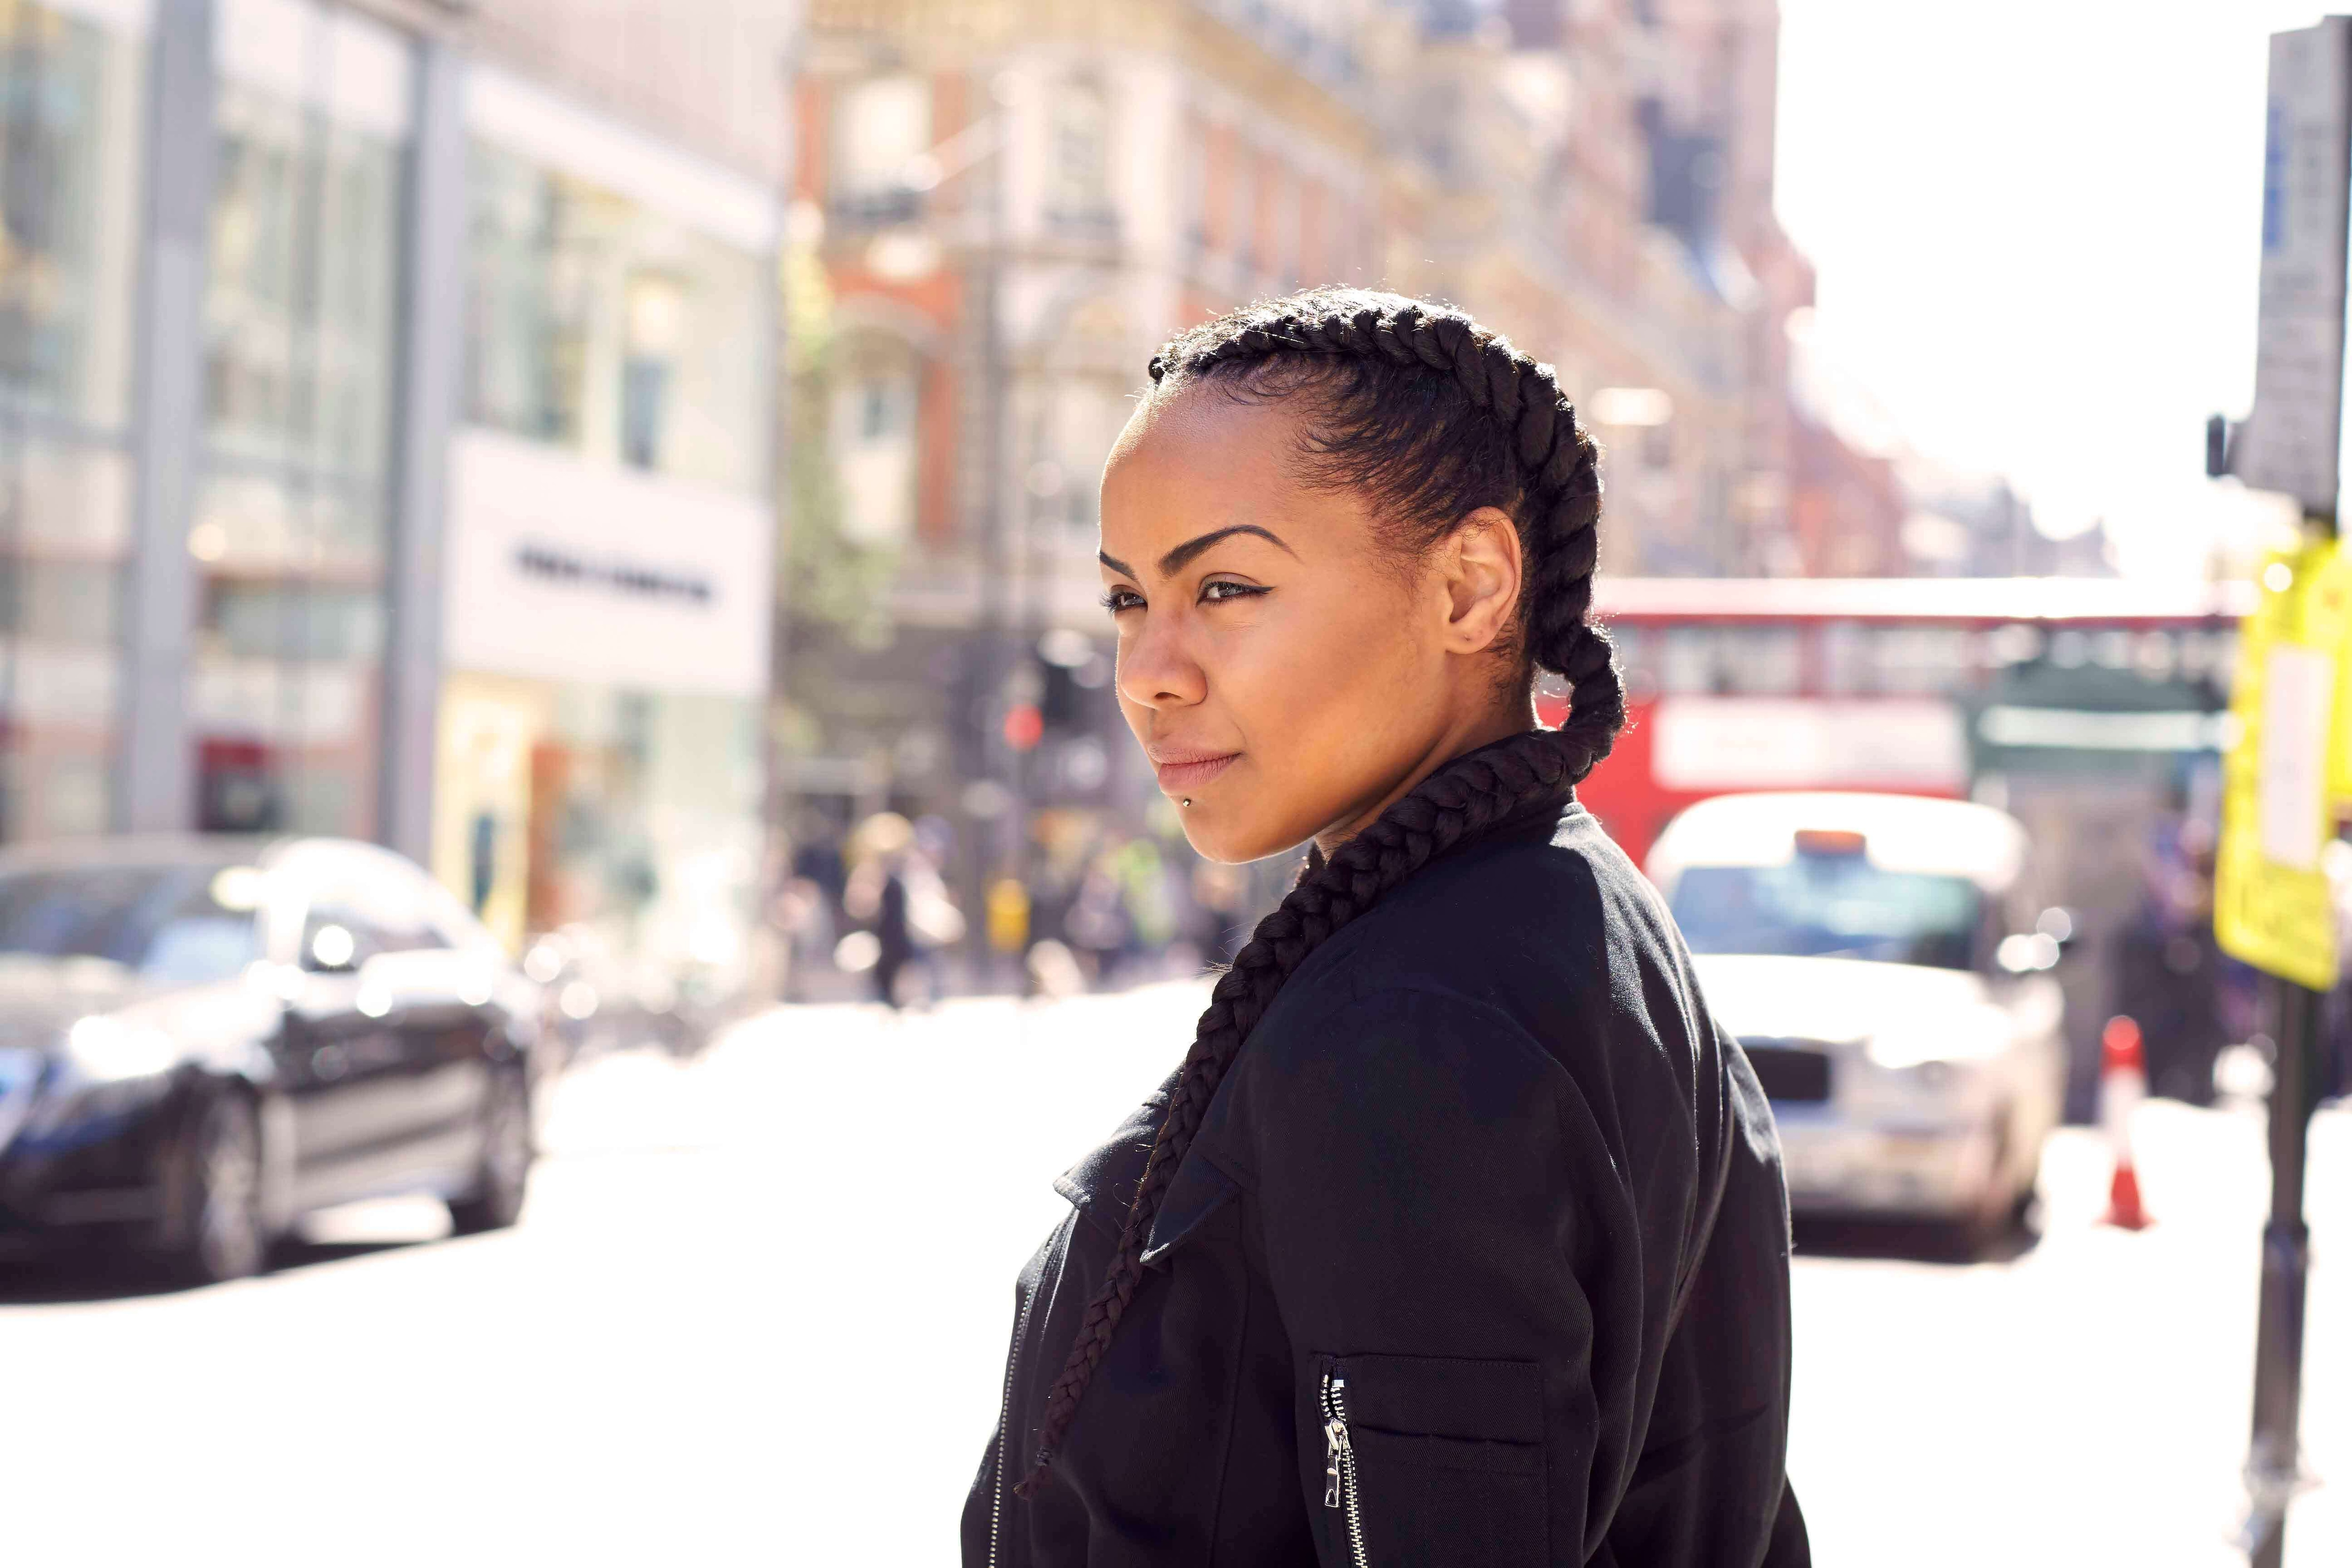 street style shot of a girl in the street wearing a black bomber jacket with her natural hair in boxer braids